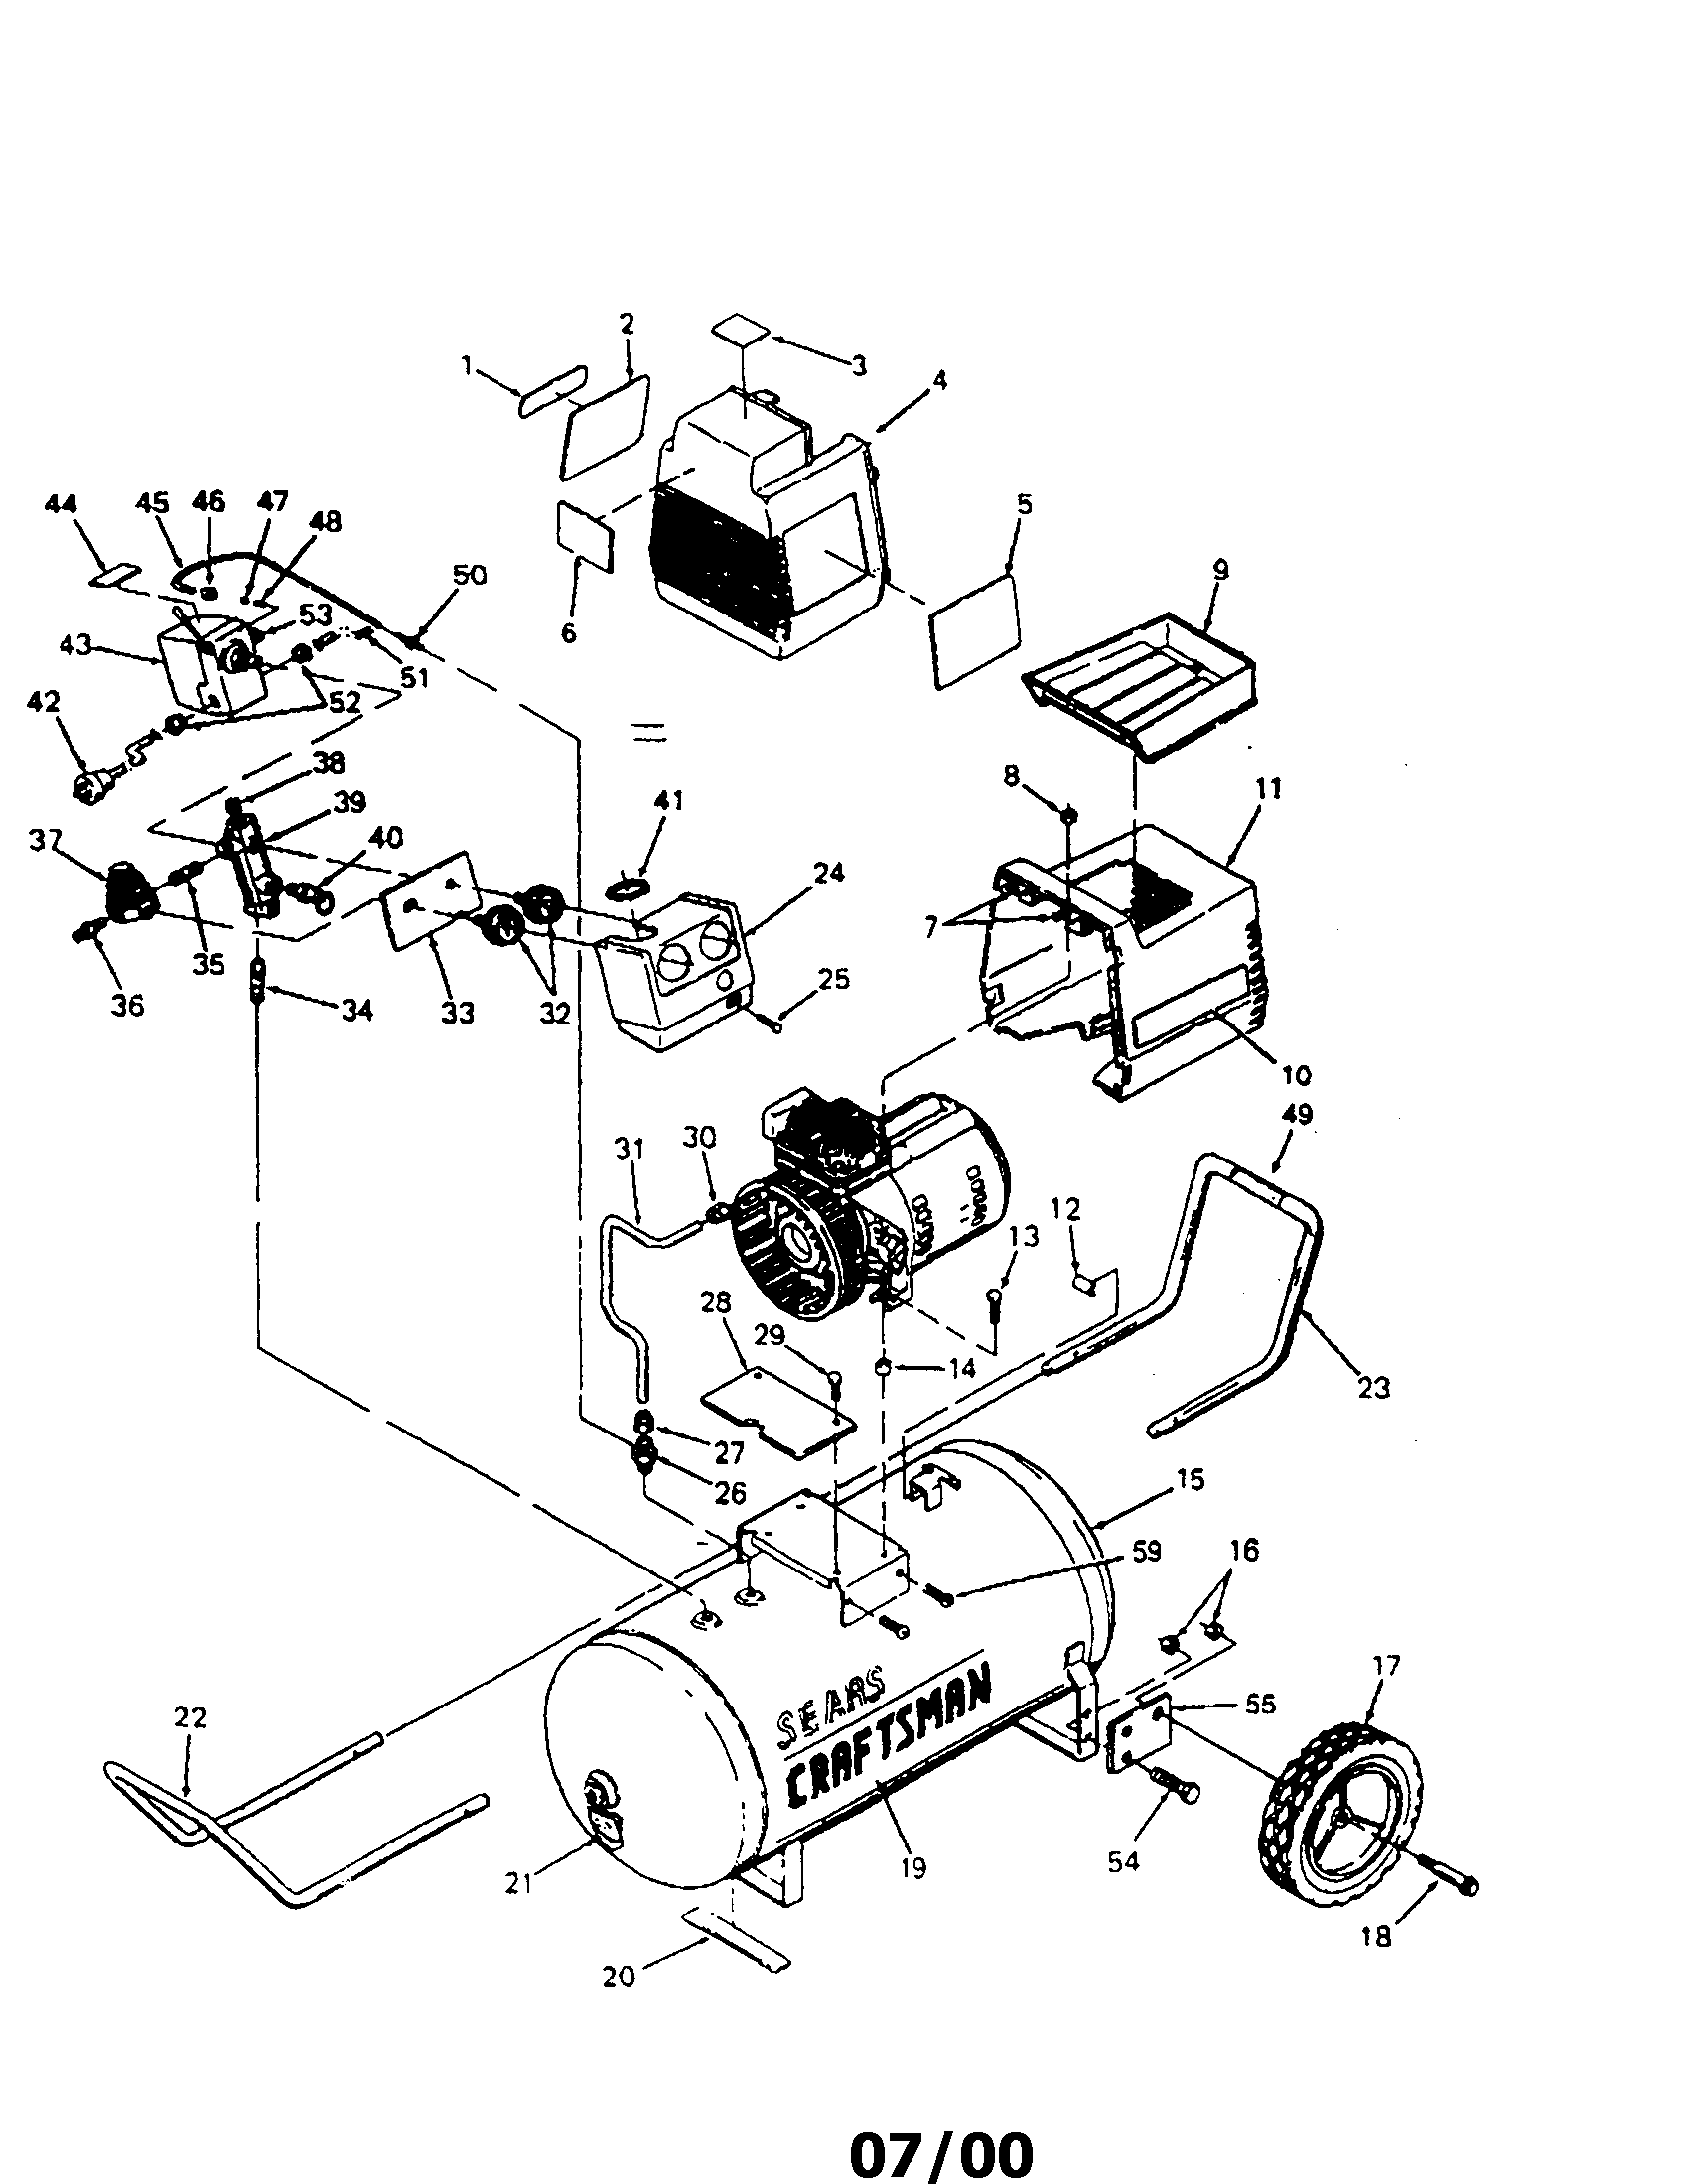 919.153231_craftsman_compressor_parts 919 153231 sears craftsman air compressor parts abac air compressor wiring diagram at mr168.co